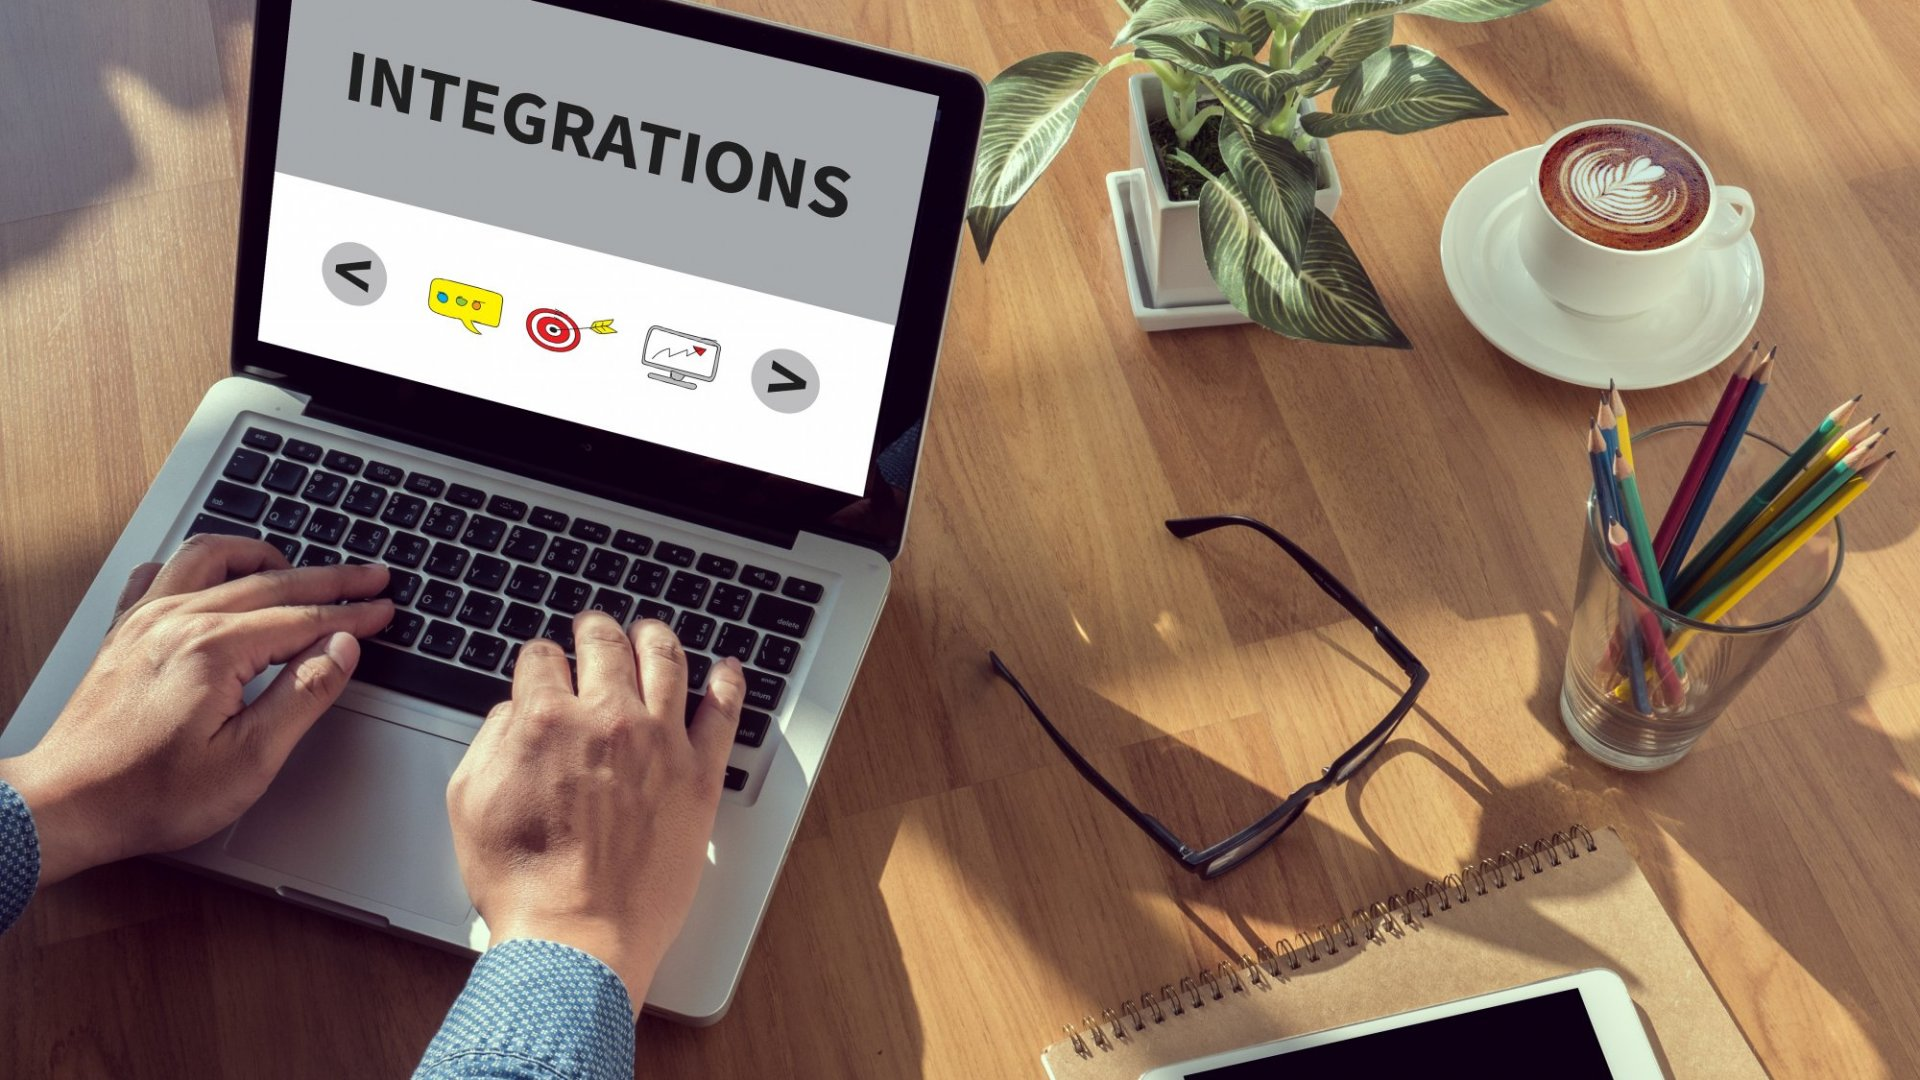 The Top 7 HubSpot Integrations To Automate Your Business